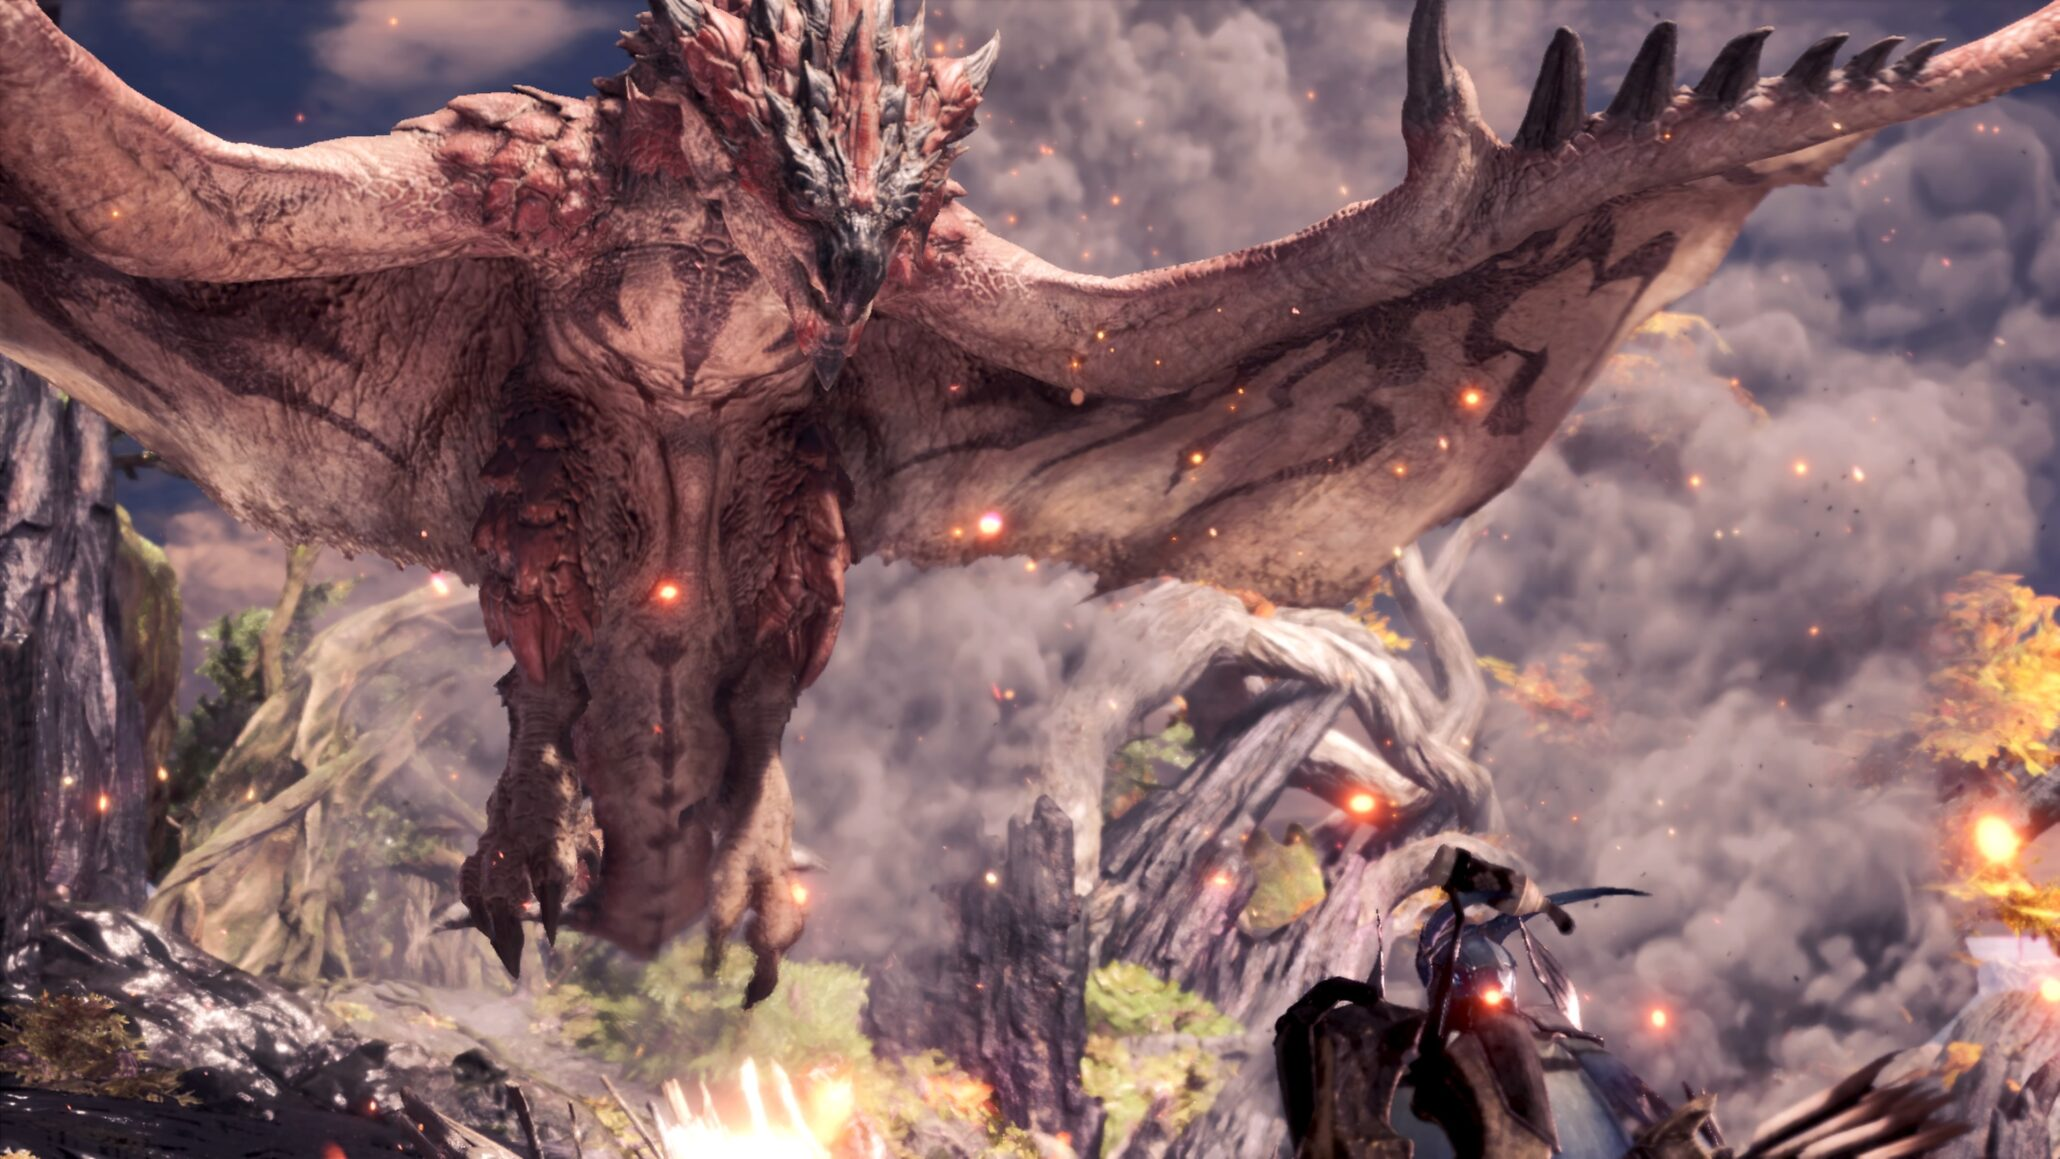 New PC Monster Hunter World Mod Shows Monsters HP and Team Damage